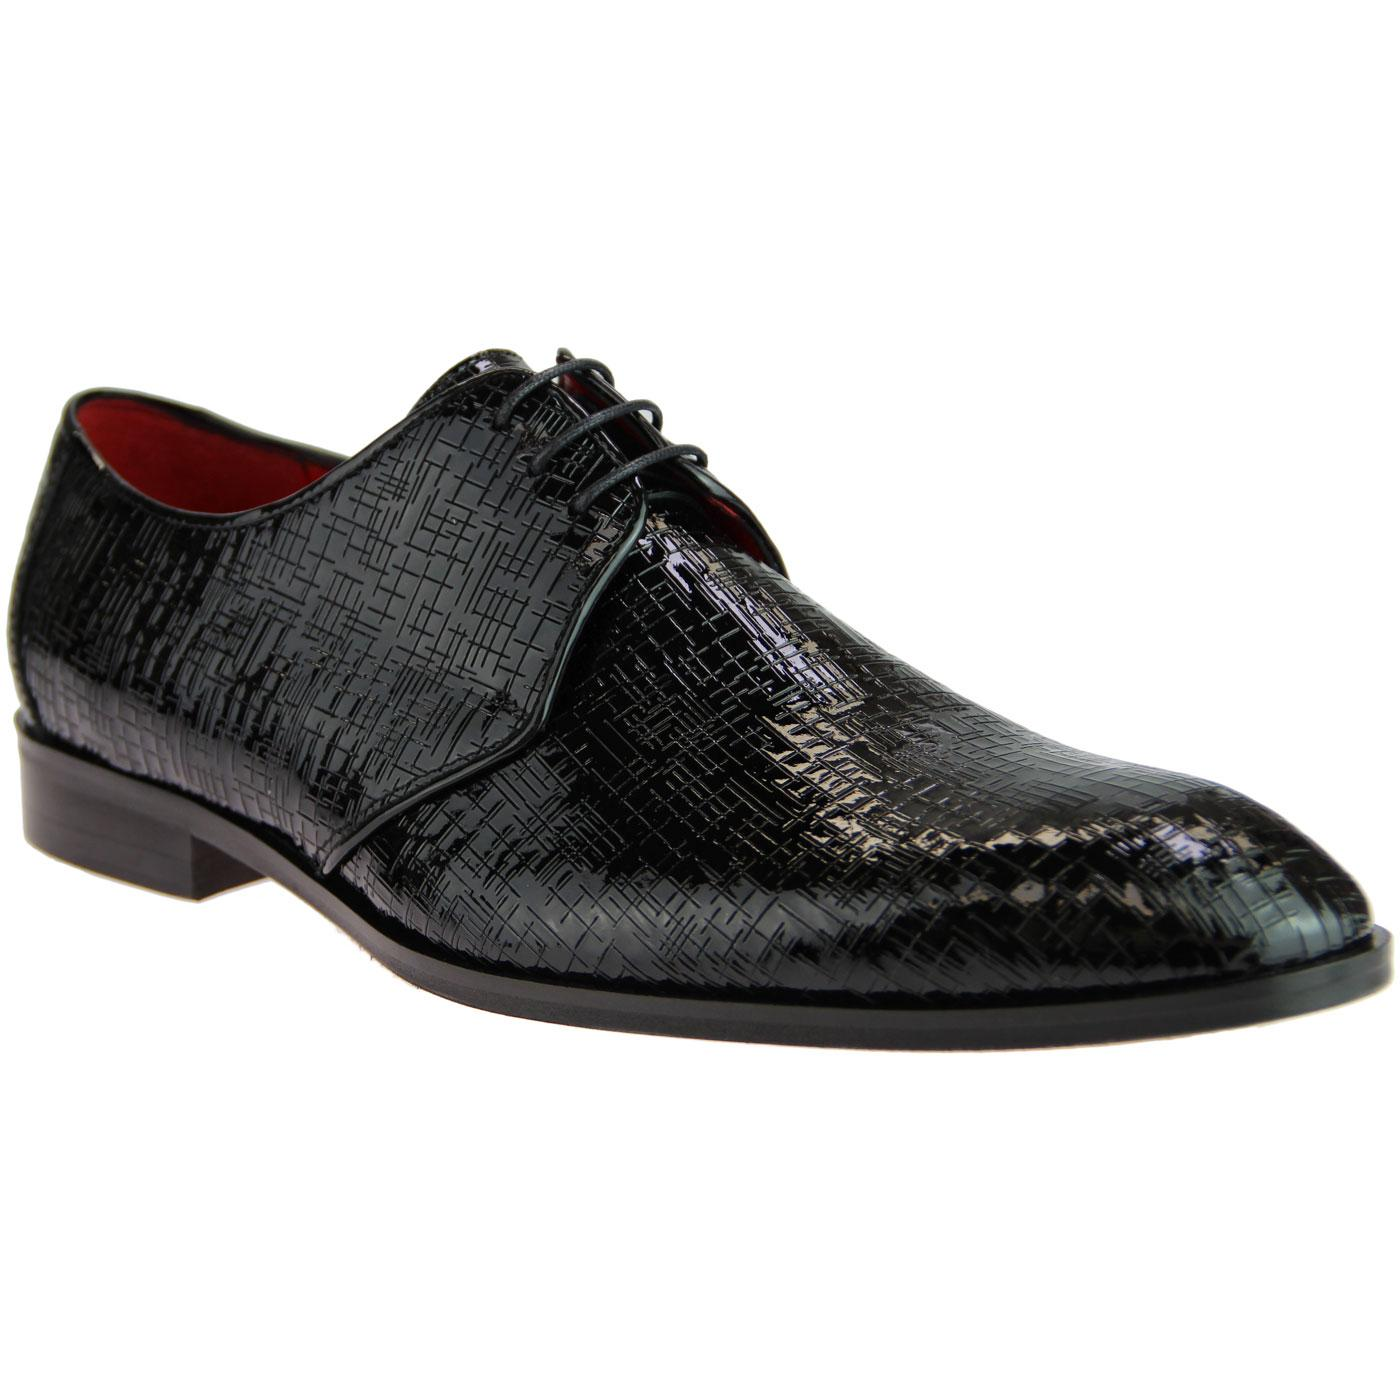 LACUZZO Retro Mod Etched Patent Smart Dress Shoes